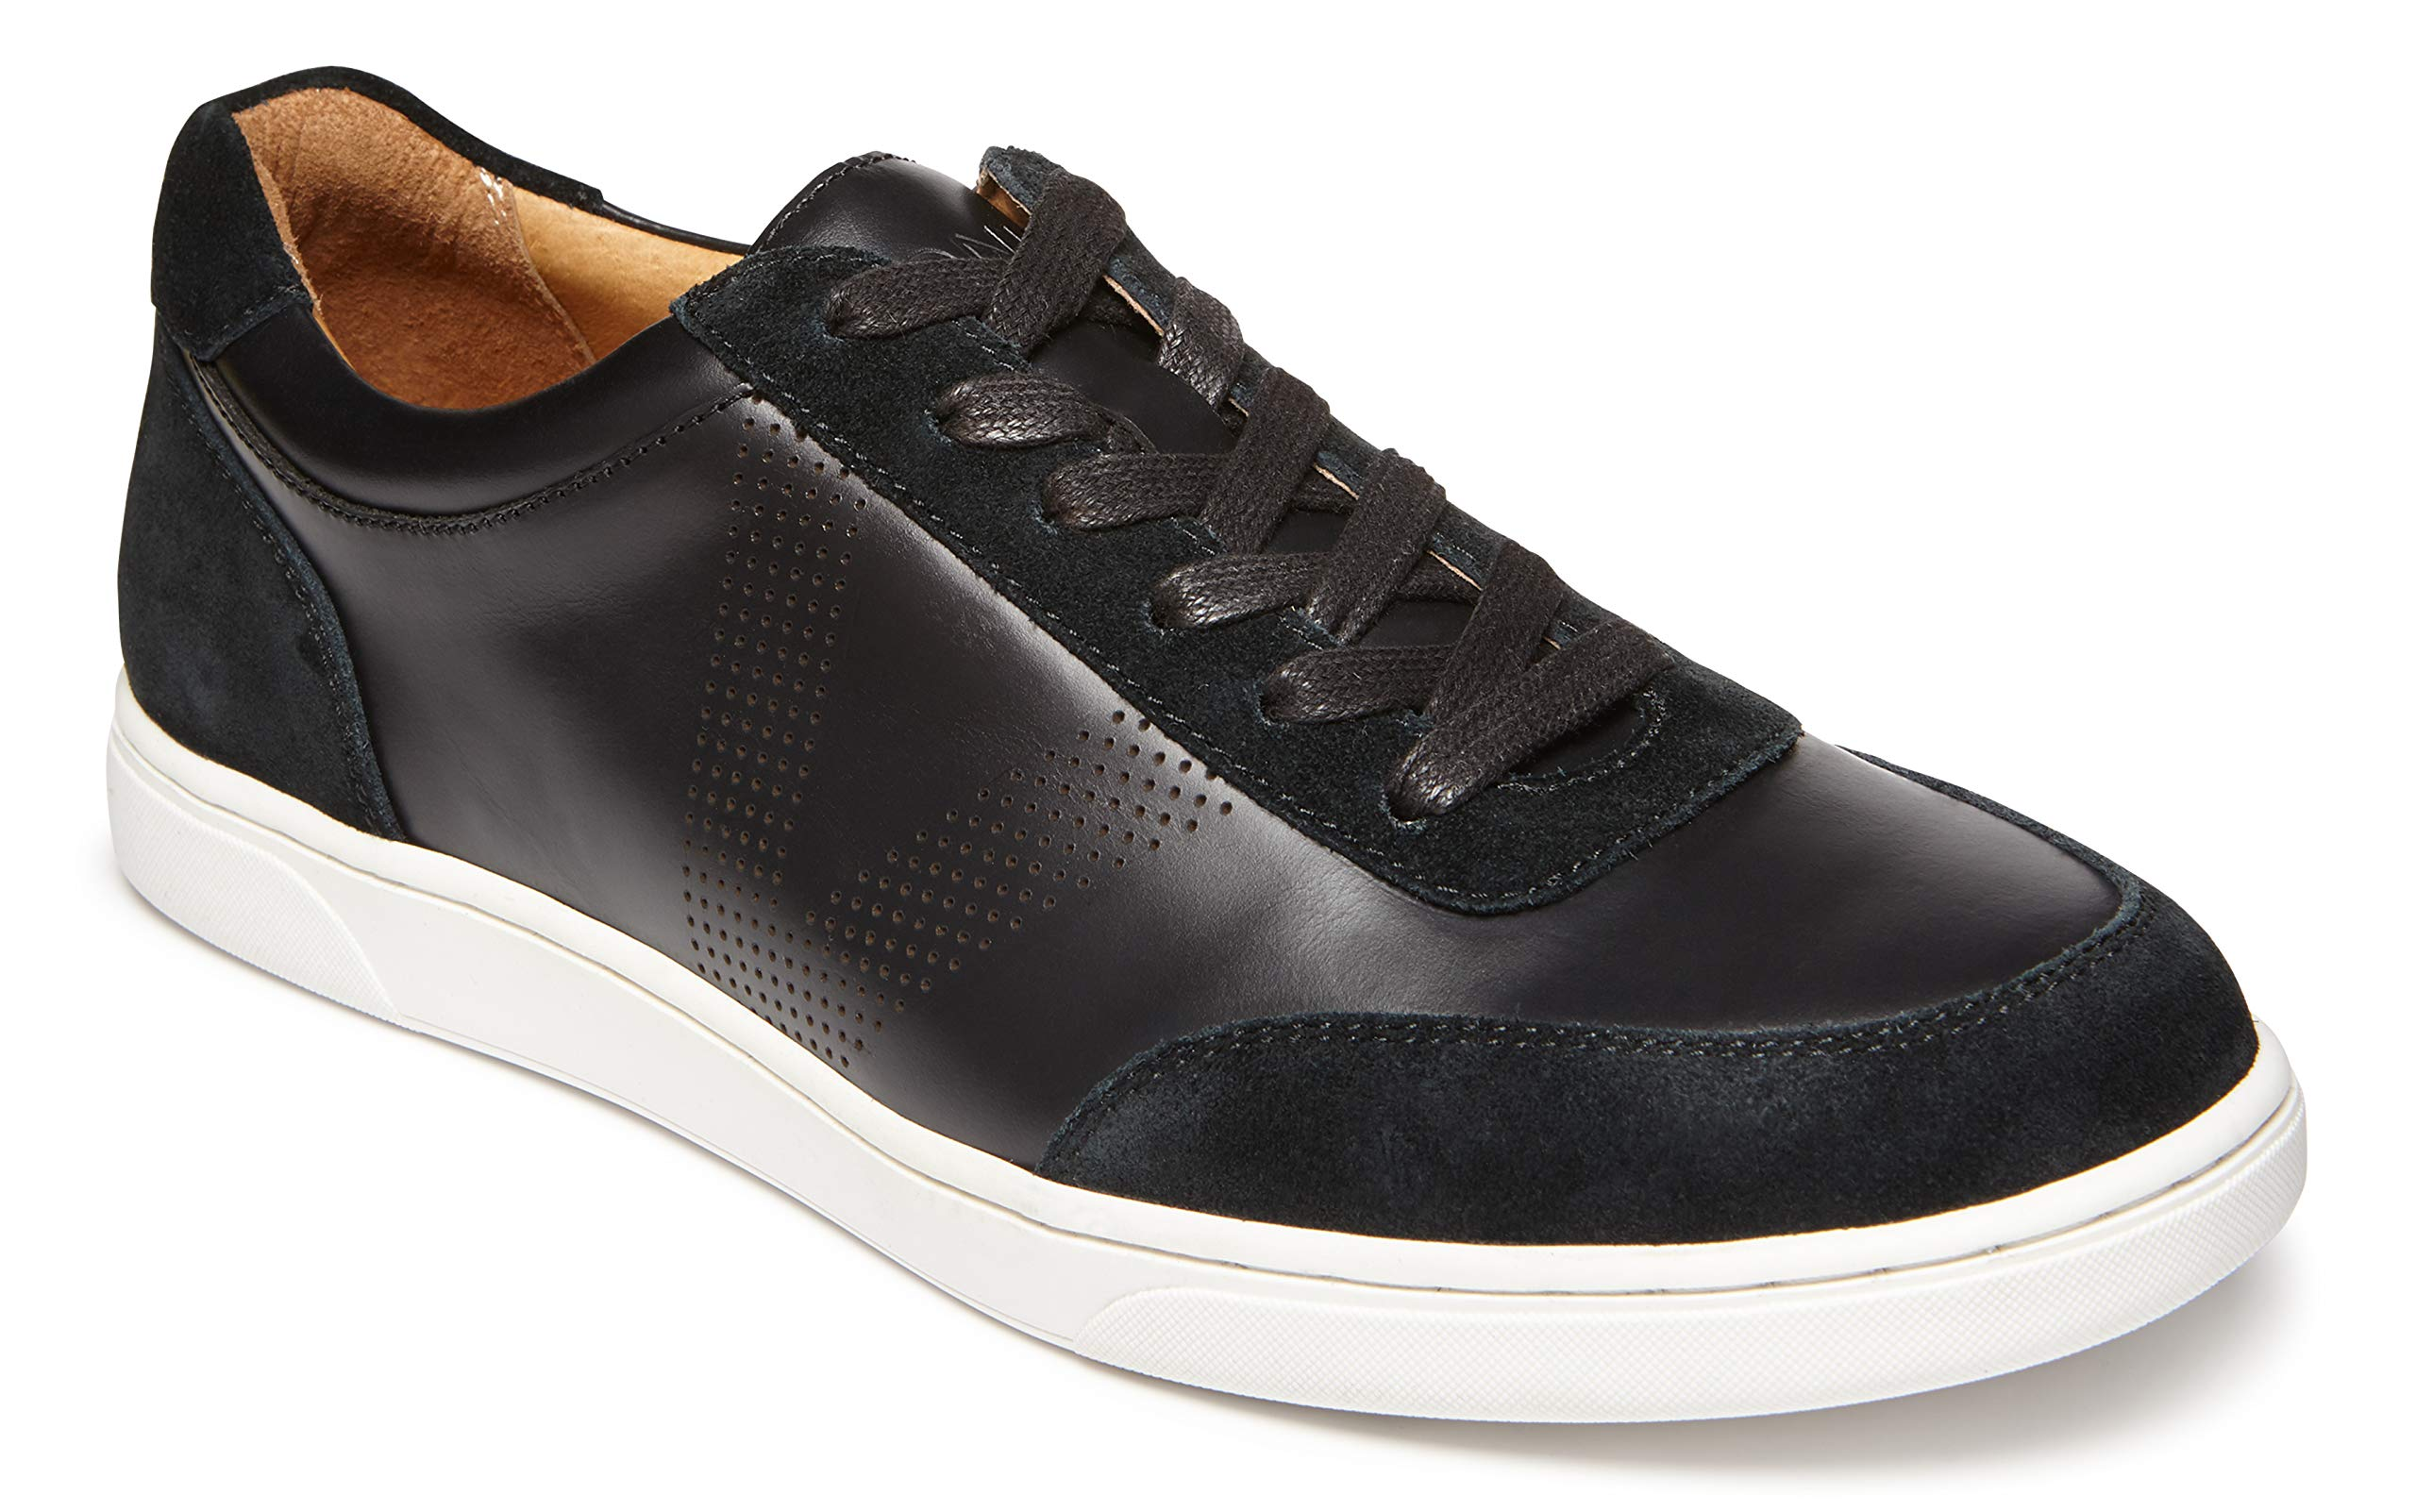 Vionic Men's Mott Brok Lace Up Sneaker - Leather Walking Shoes with Concealed Orthotic Arch Support Black 11 Medium US by Vionic